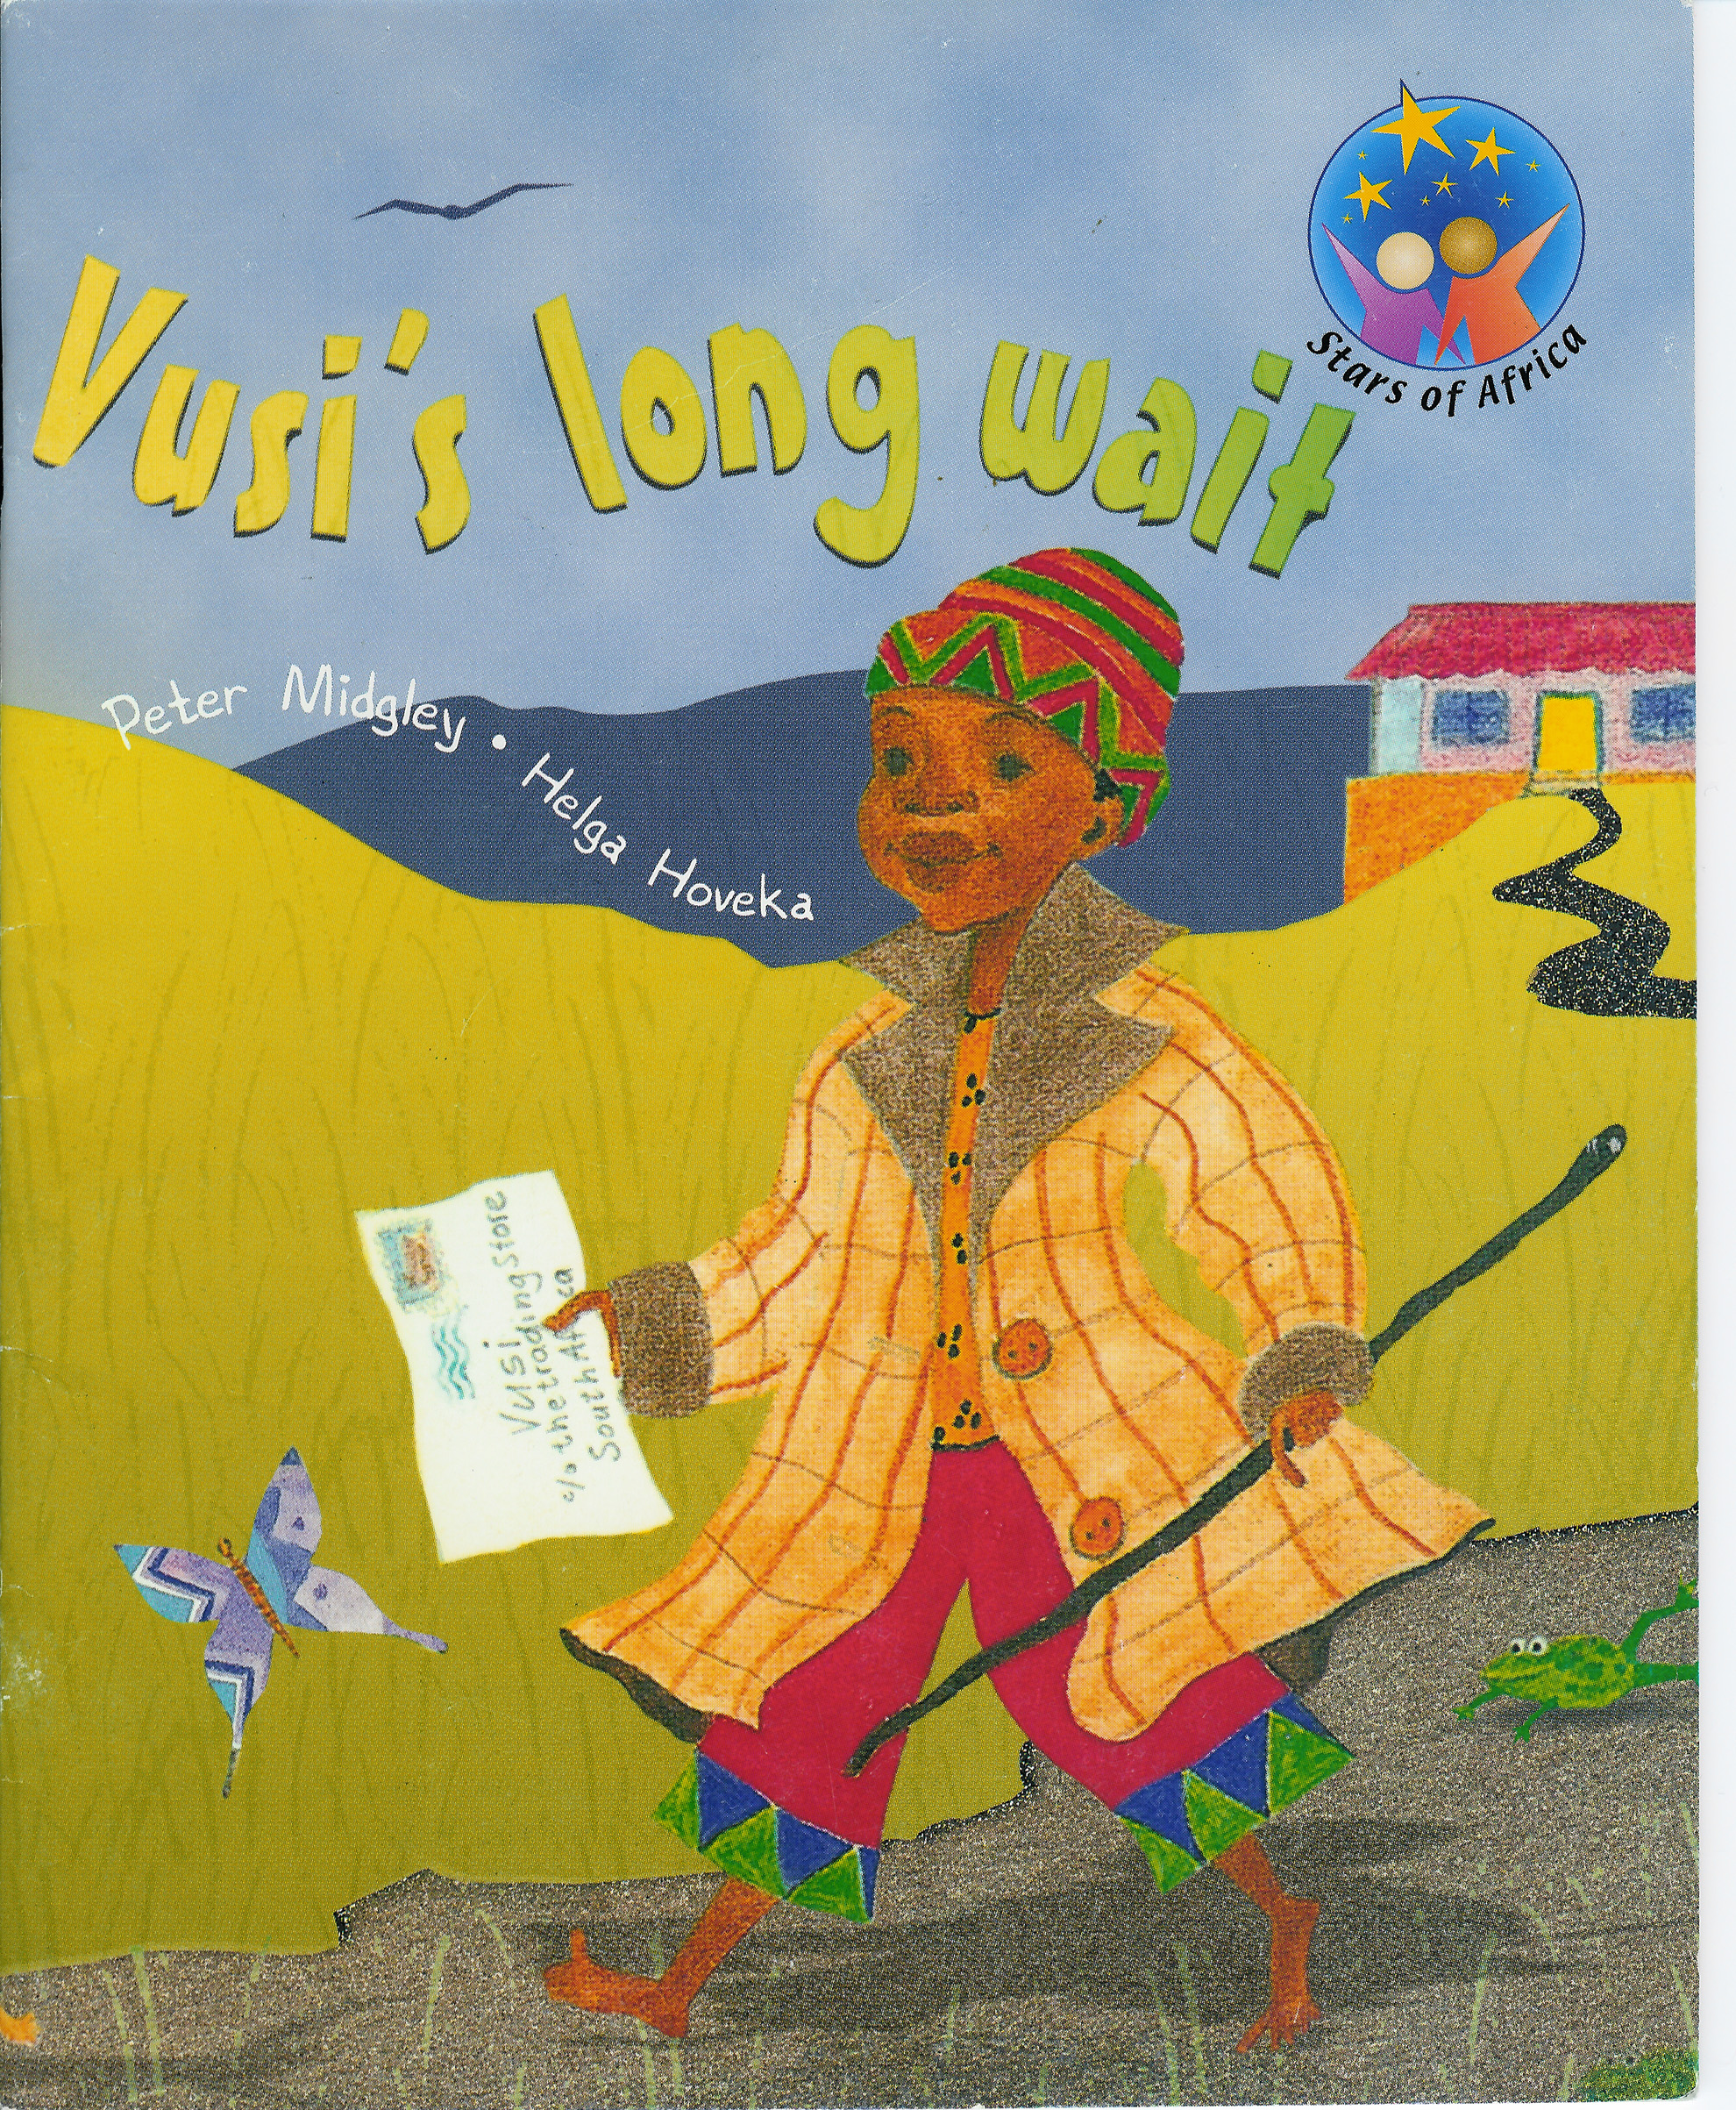 Vusi's Long Wait - 1996 24 pages | ISBN 9780636046160Vusi's father goes away to work on the mines for a year. Vusi wishes the year would pass more quickly...You can buy Vusi's Long Wait directly from my online store.